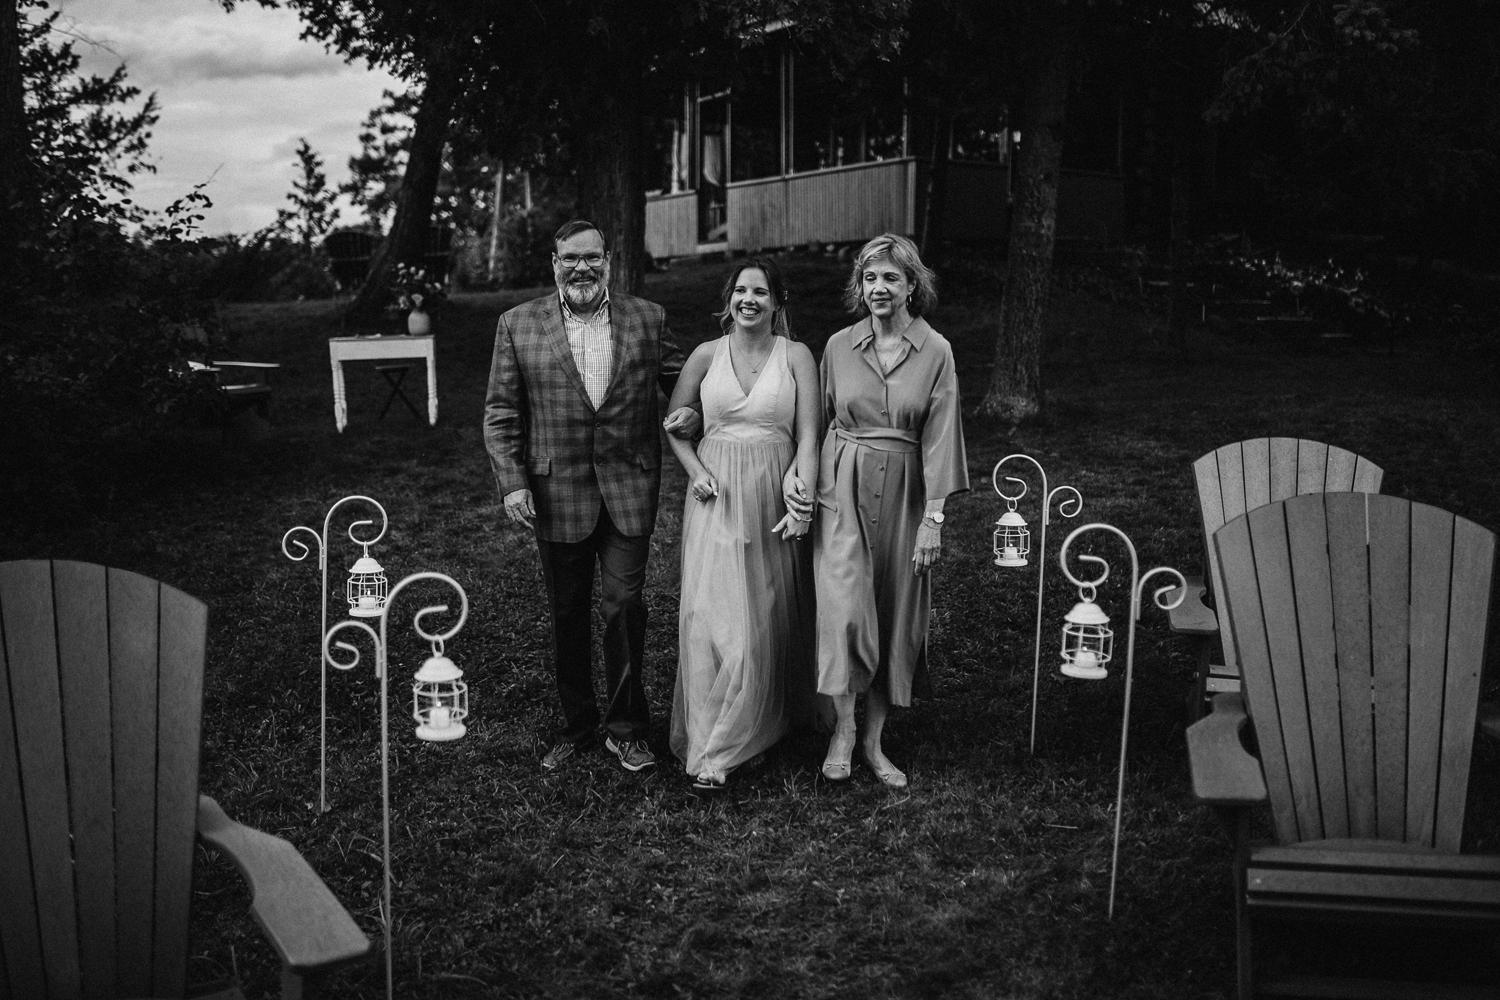 kerry ford photography - small intimate backyard rideau lake island wedding perth ontario-045.jpg